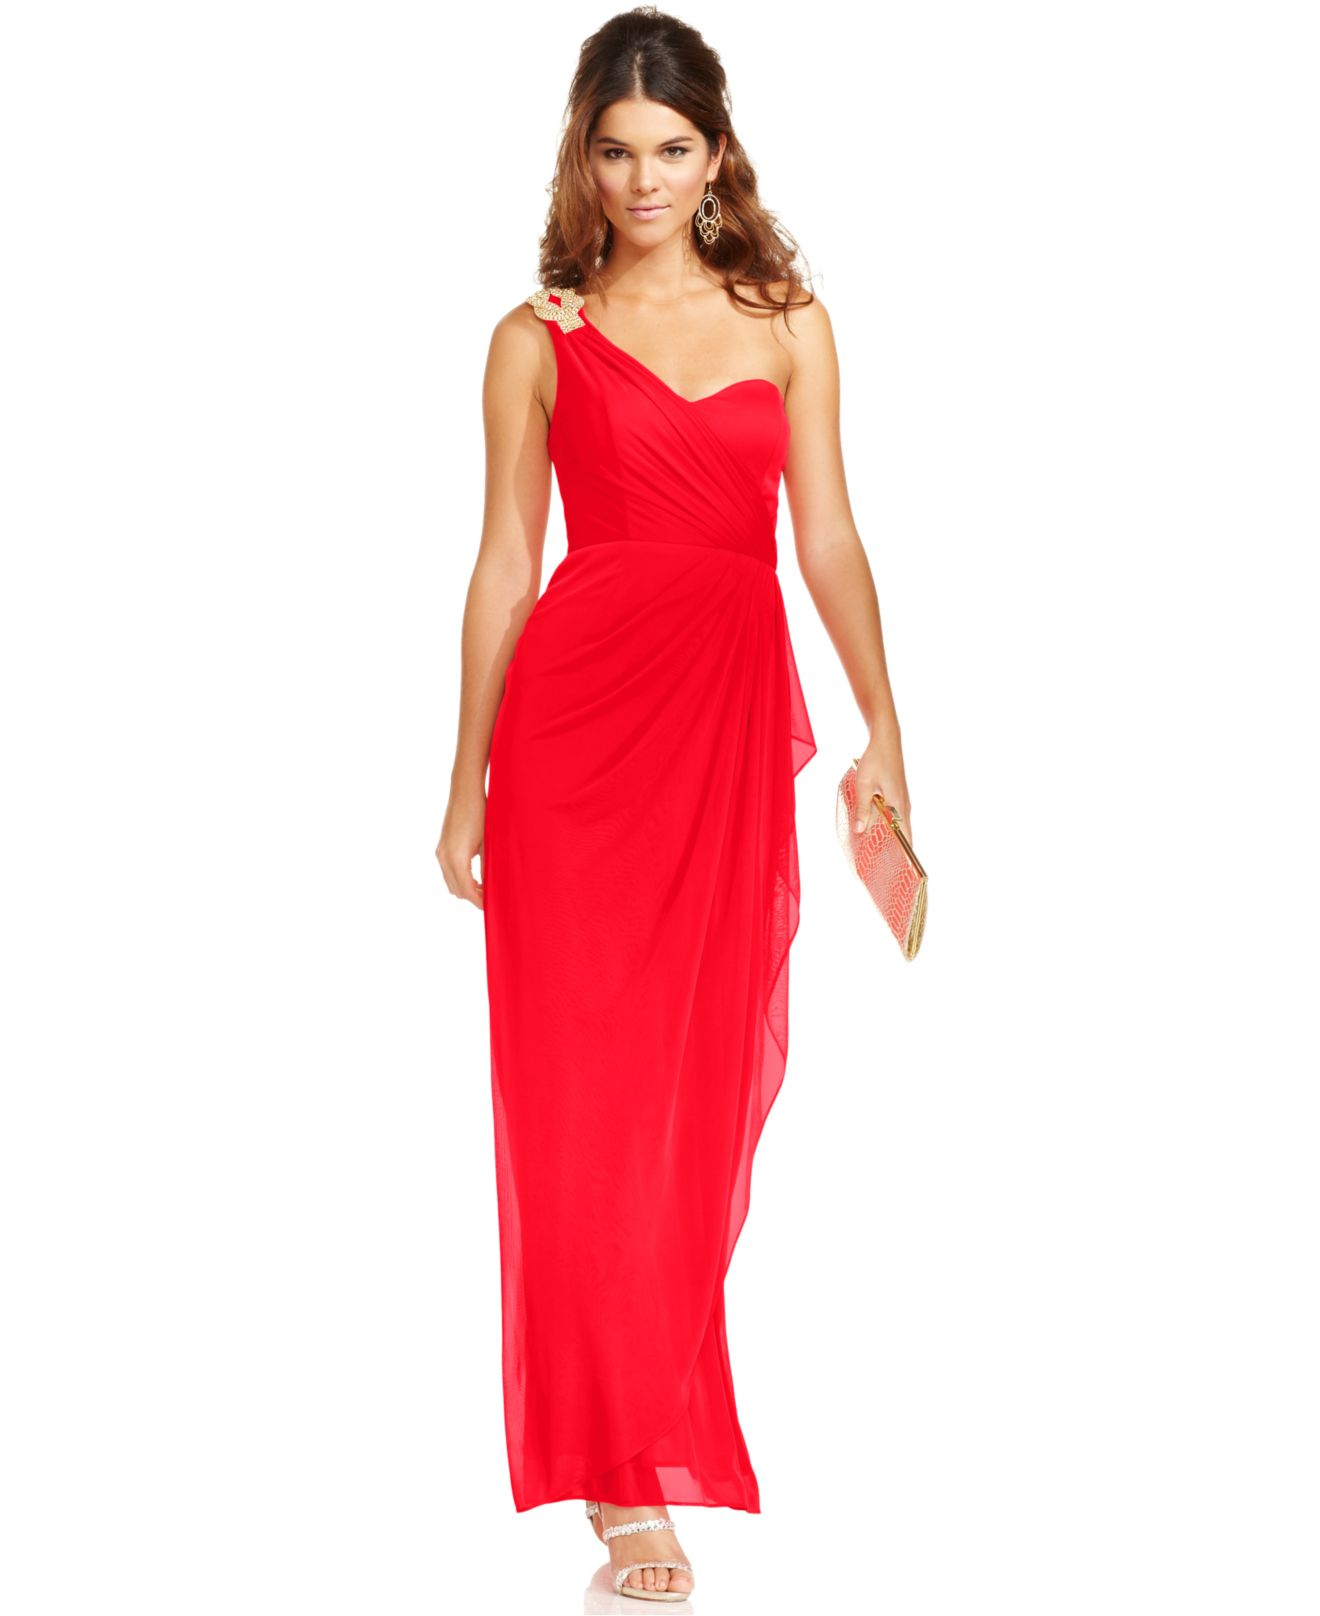 31dc4a01 Xscape Petite Dress, Sleeveless One-Shoulder Jeweled Gown in Red - Lyst